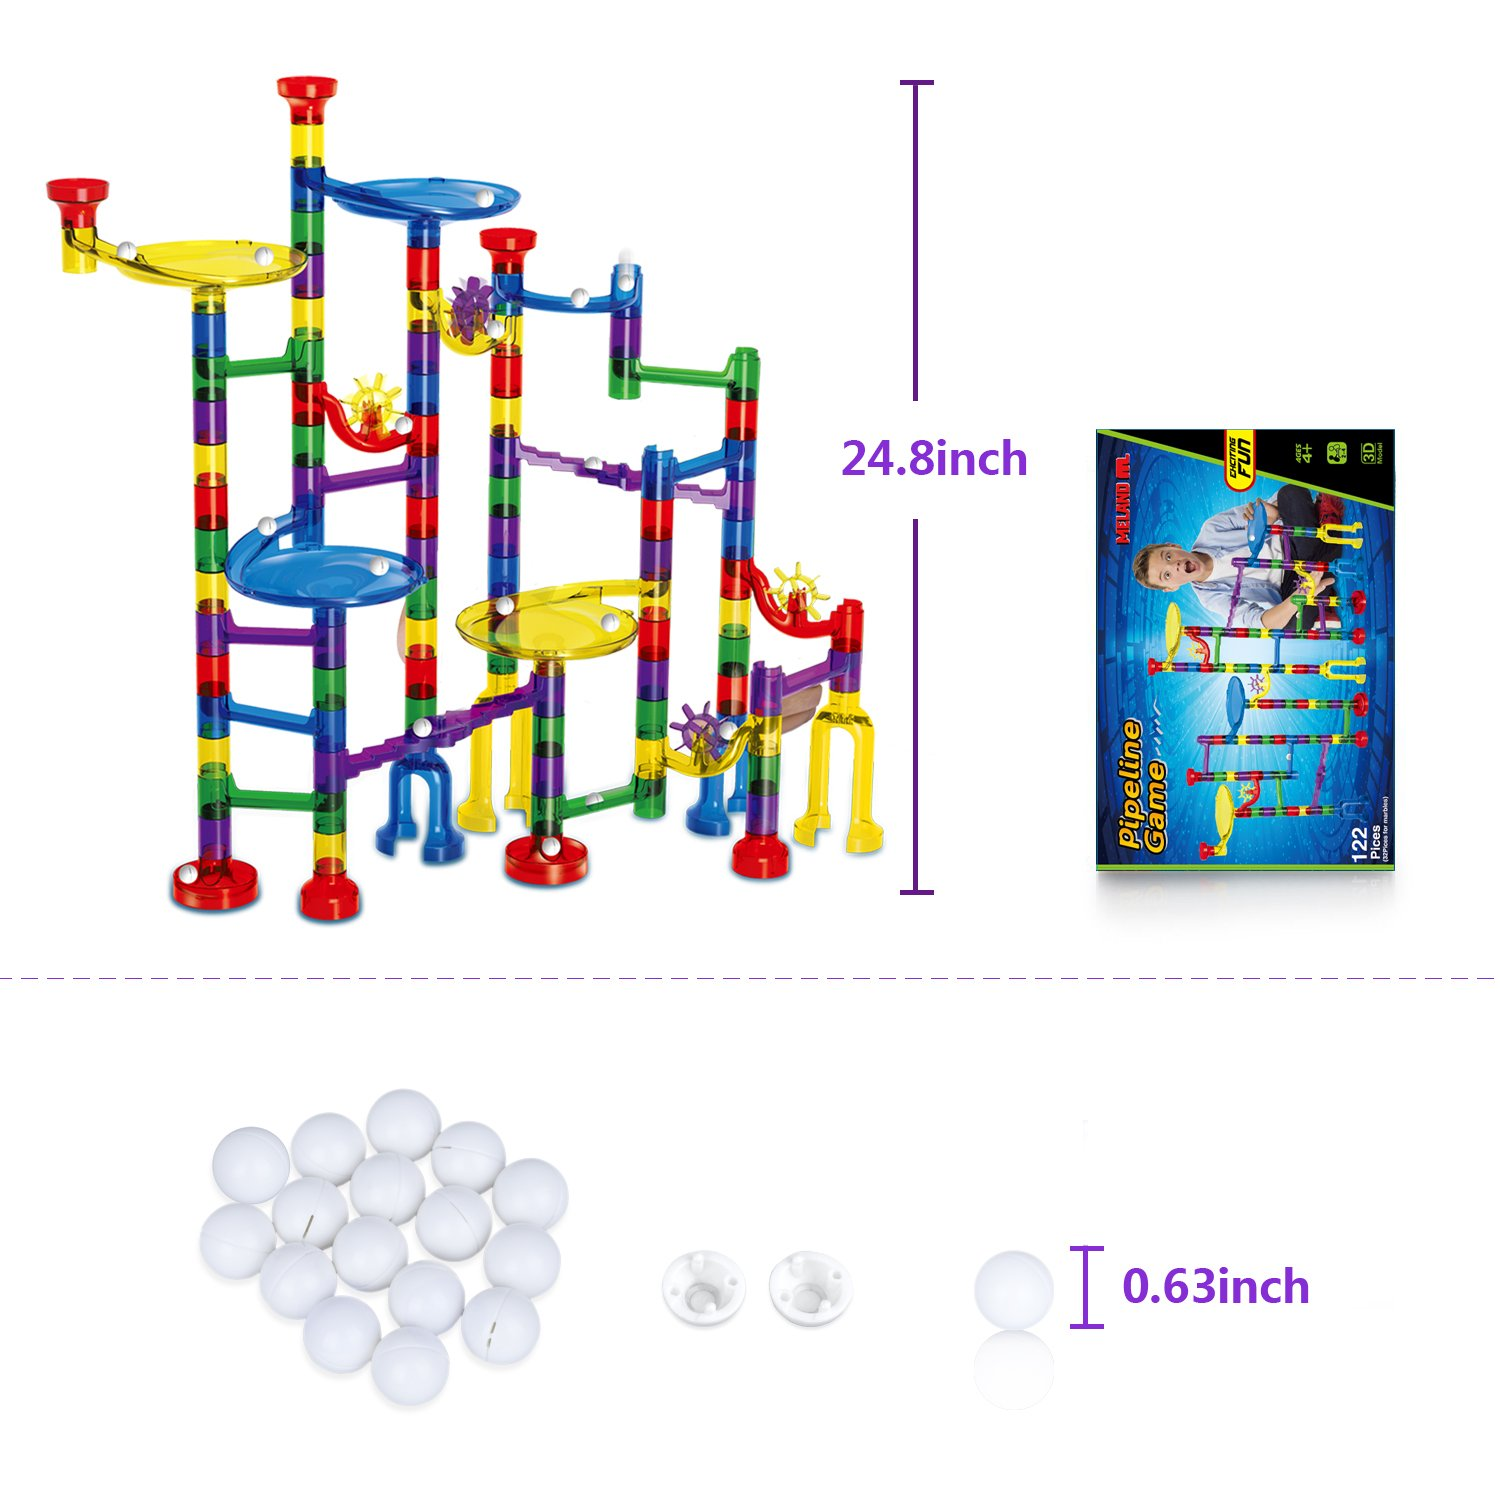 Meland Marble Run Toy 122 Pcs Marble Game STEM Learning Toy, Educational Construction Building Blocks Toy, Marble Set Gift for Kids 4 5 6 + Year Old Boys Girls by Meland (Image #7)